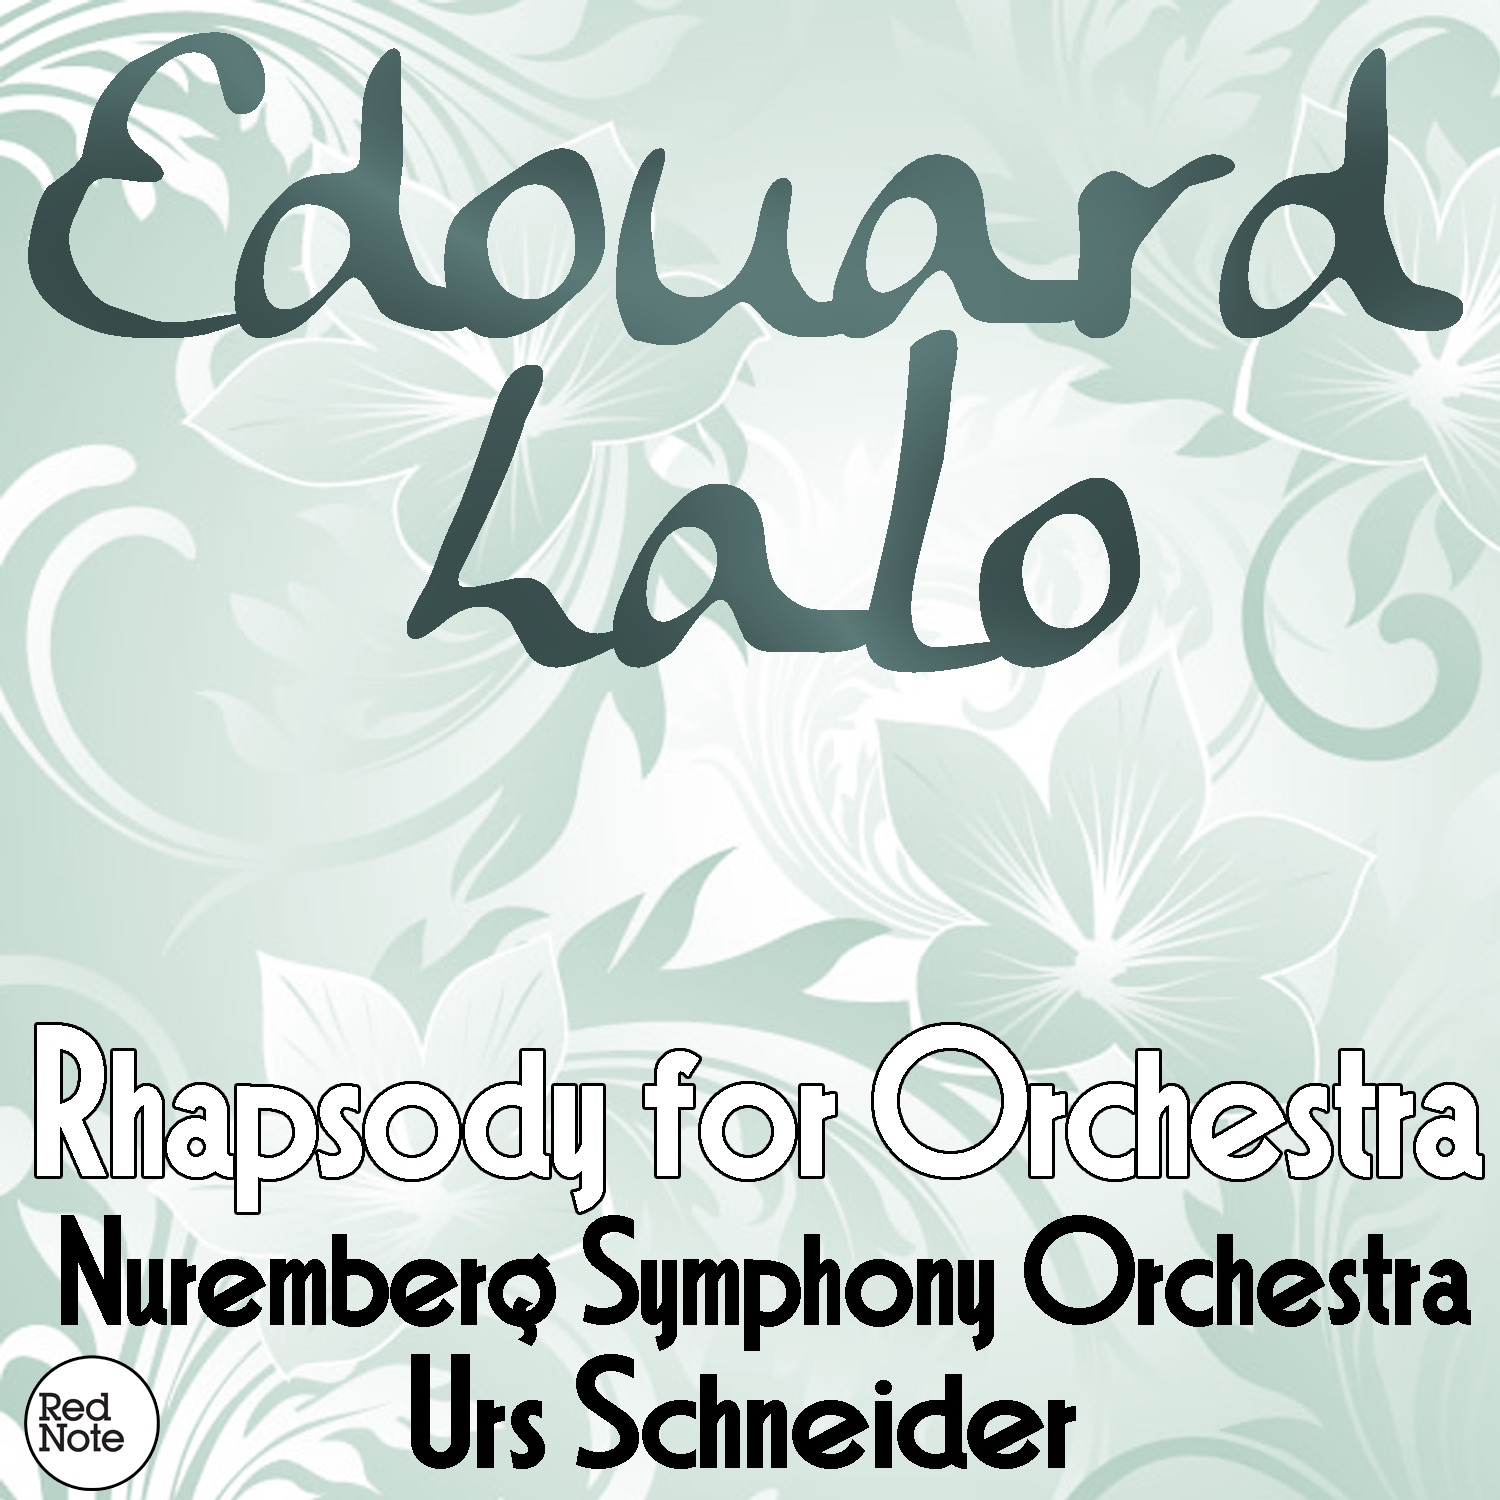 Lalo: Rhapsody for Orchestra